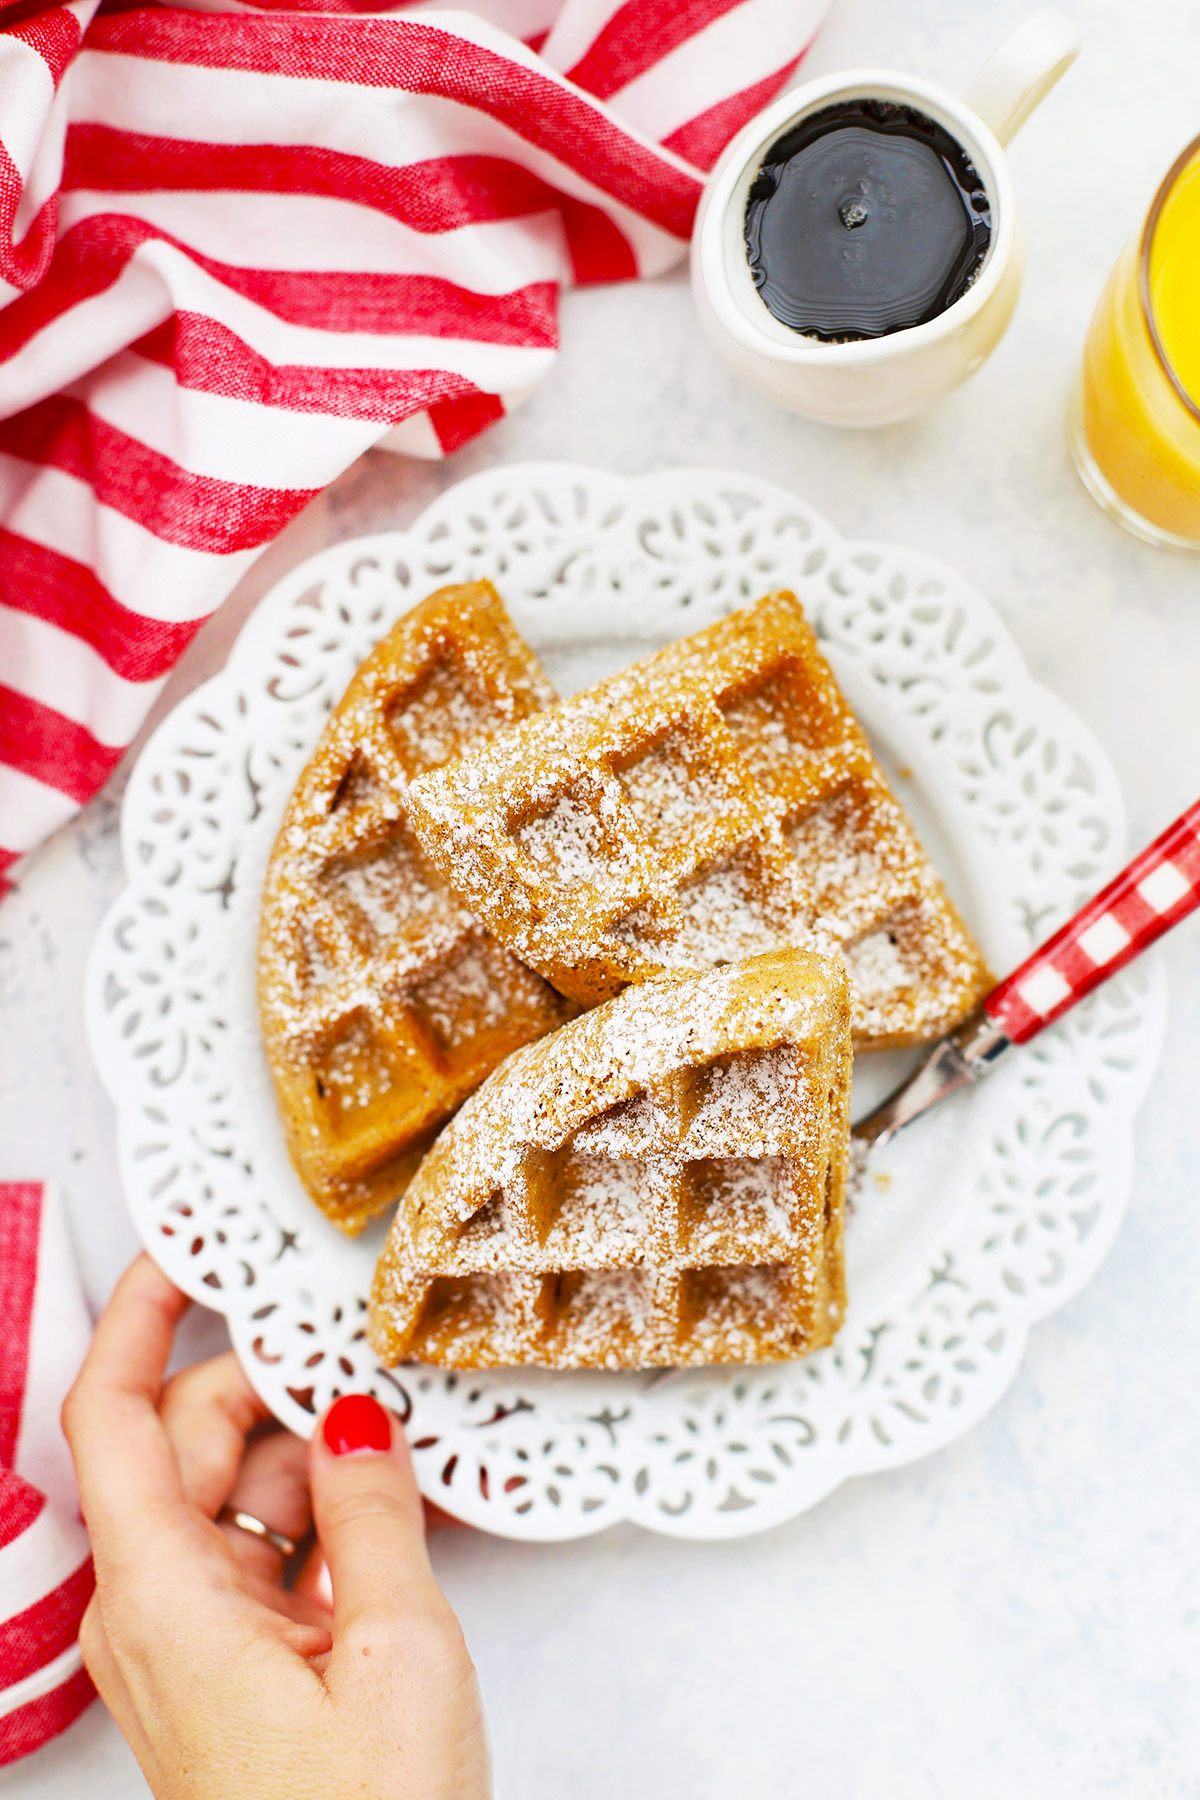 Overhead view of 3 gluten-free gingerbread waffles topped with powdered sugar on a white lace plate